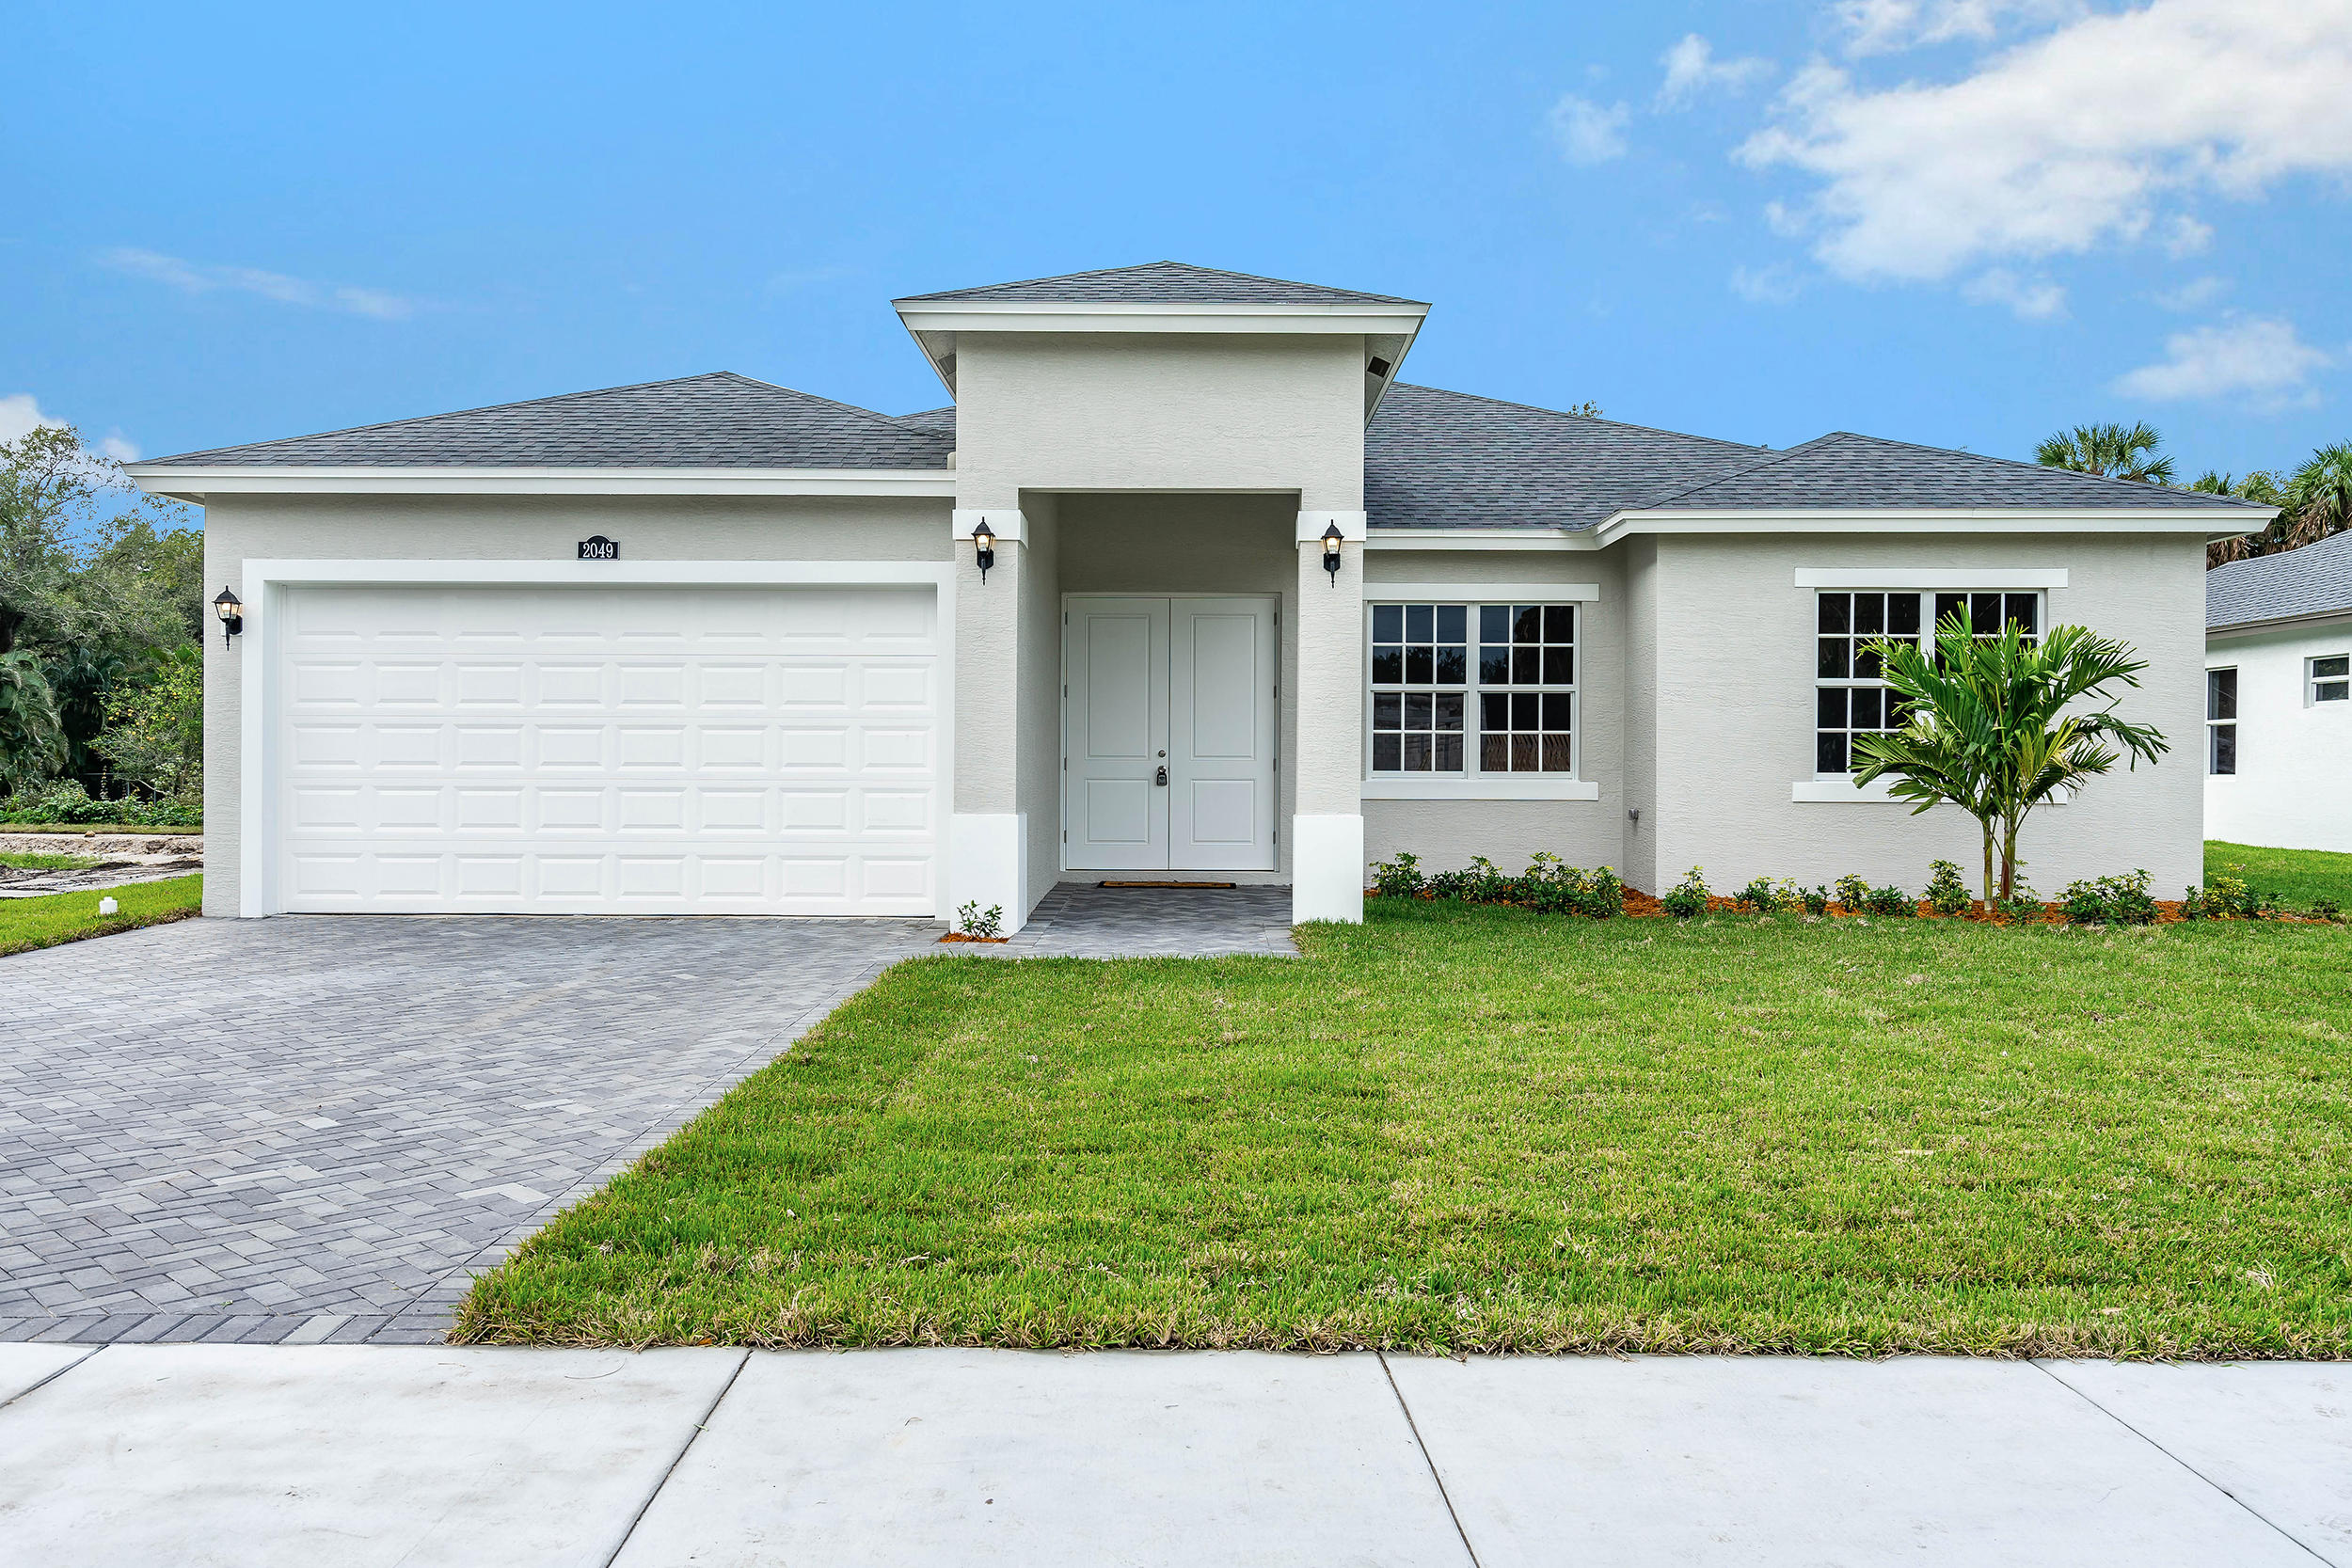 Photo of 2049 Bridgehampton Terrace, Vero Beach, FL 32966